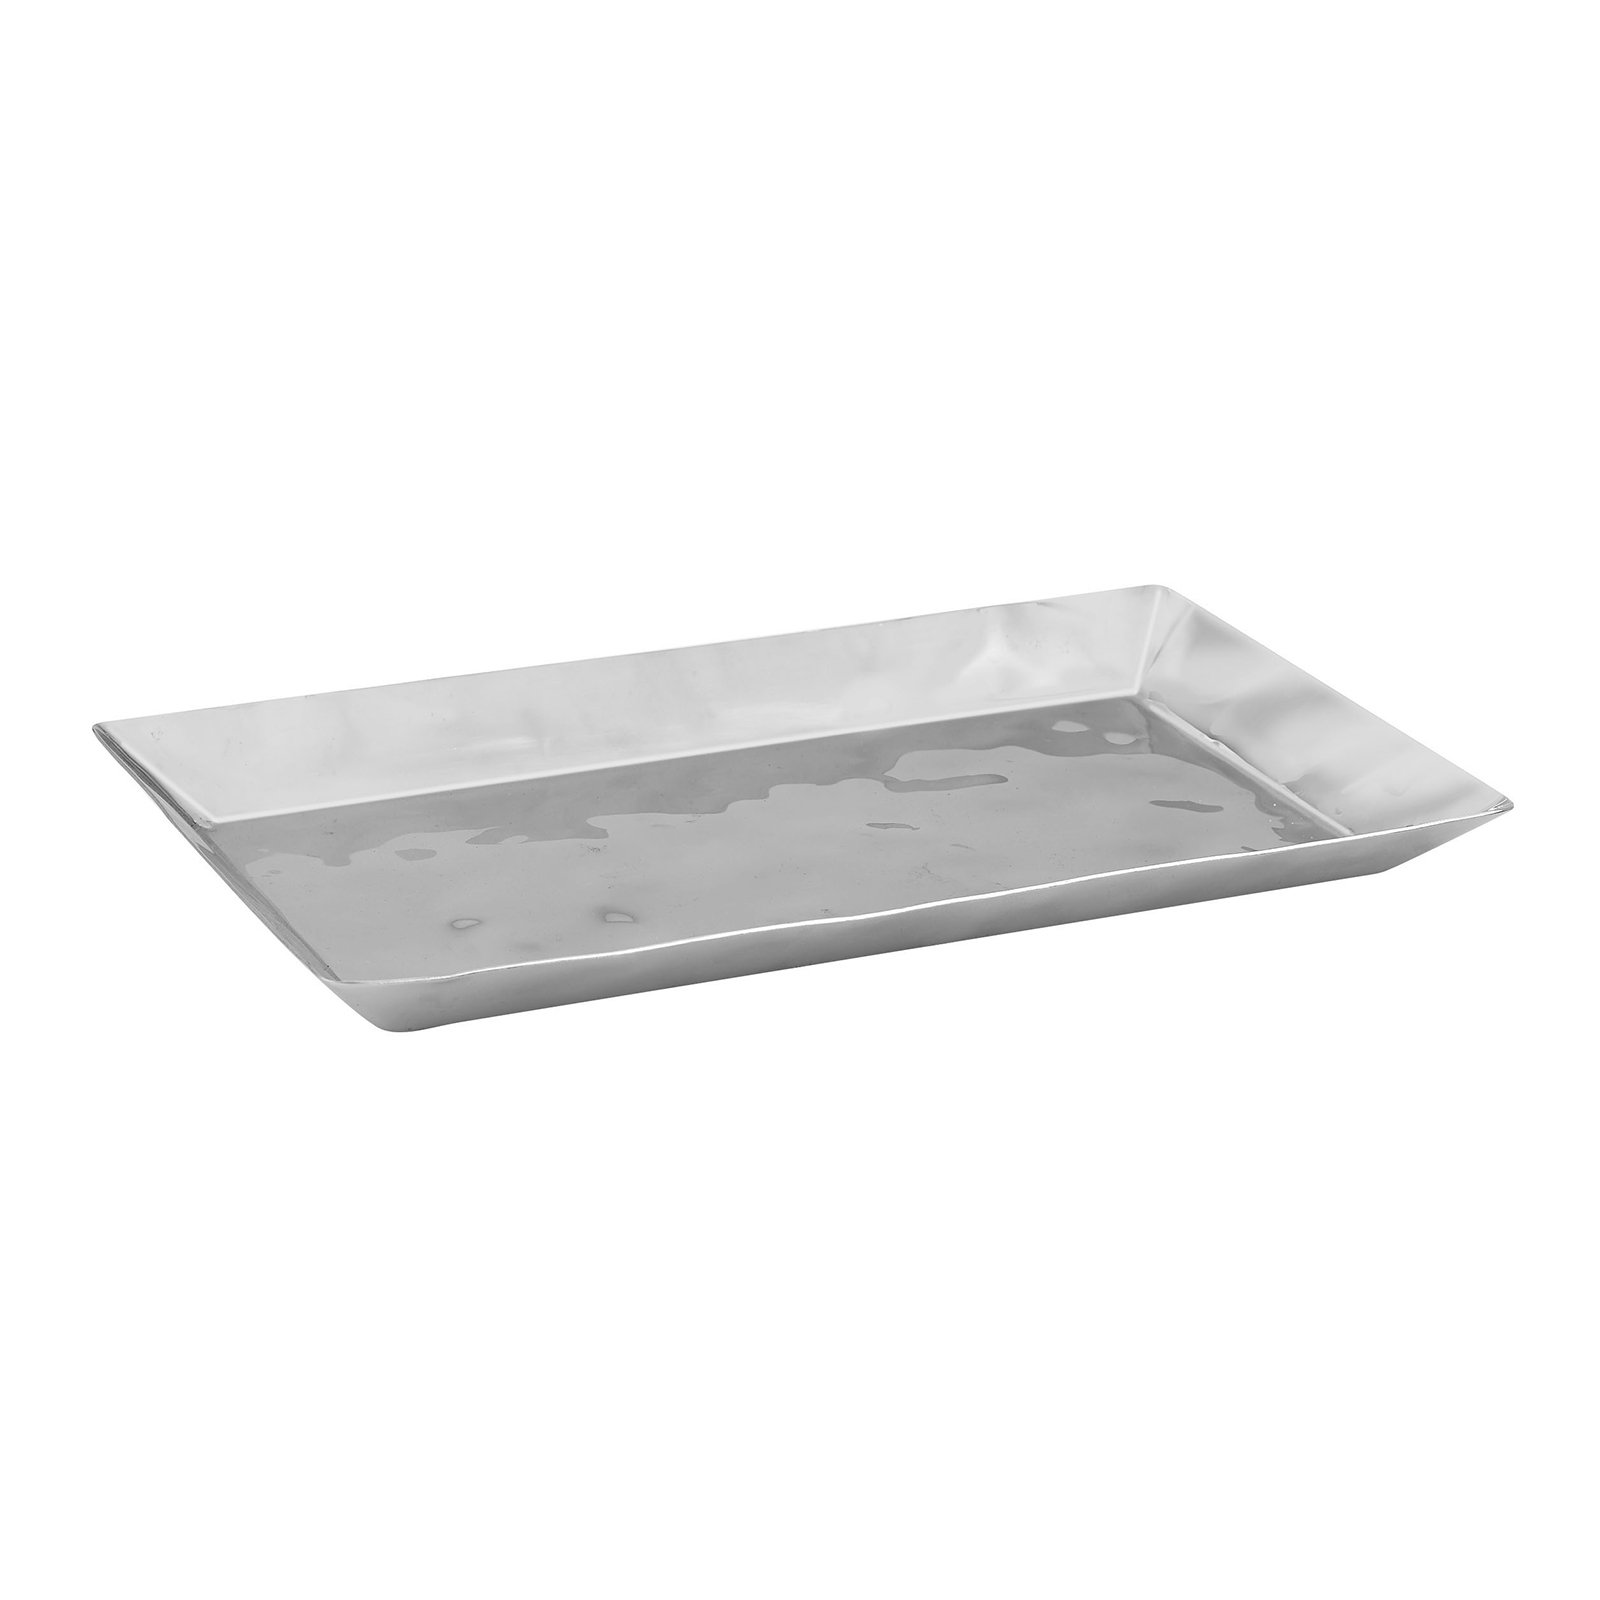 Winco HPO-14 display tray, market / bakery